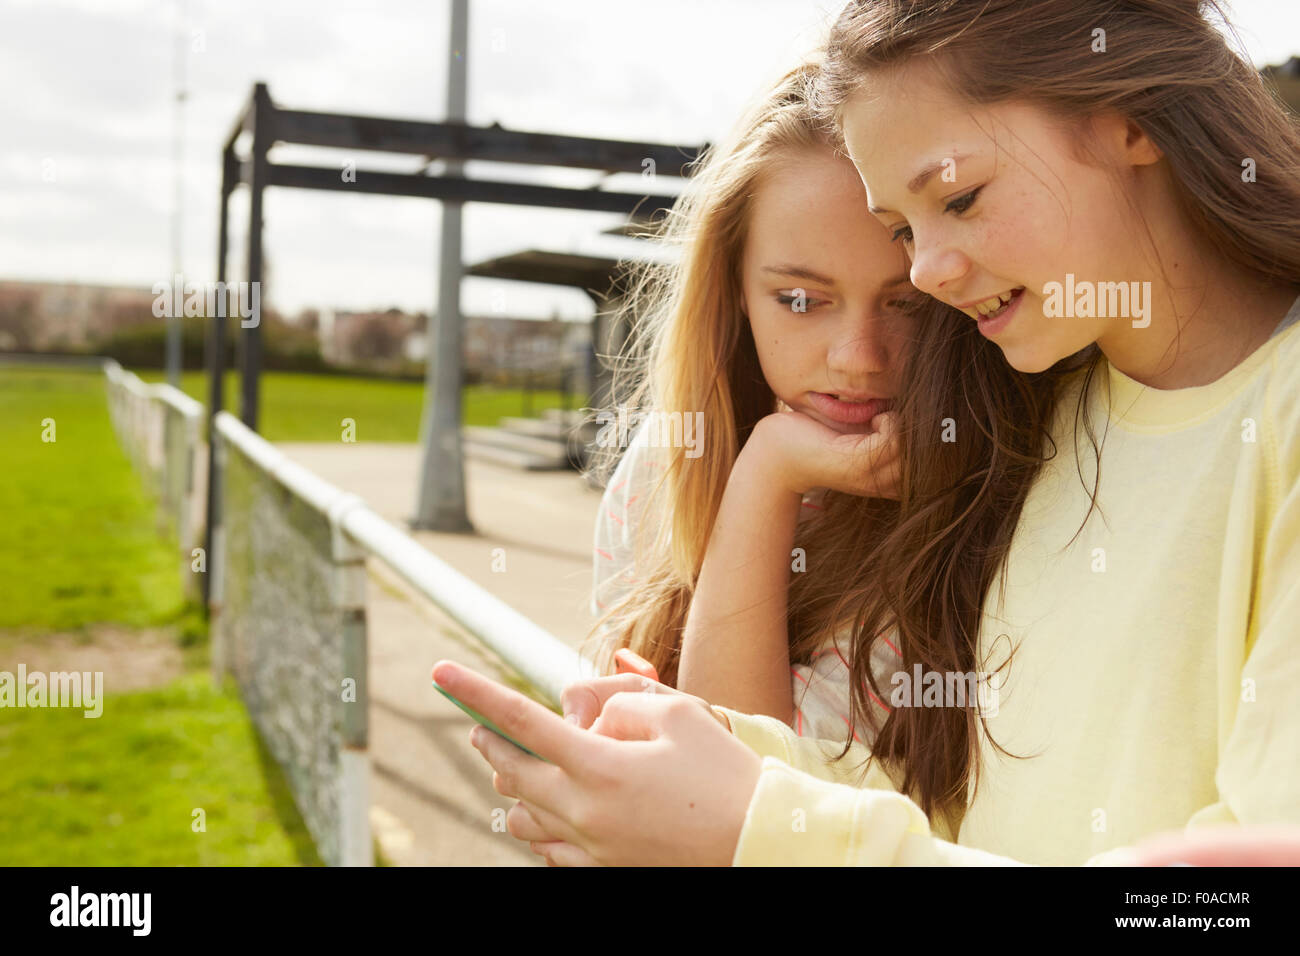 Two girls reading smartphone text message - Stock Image